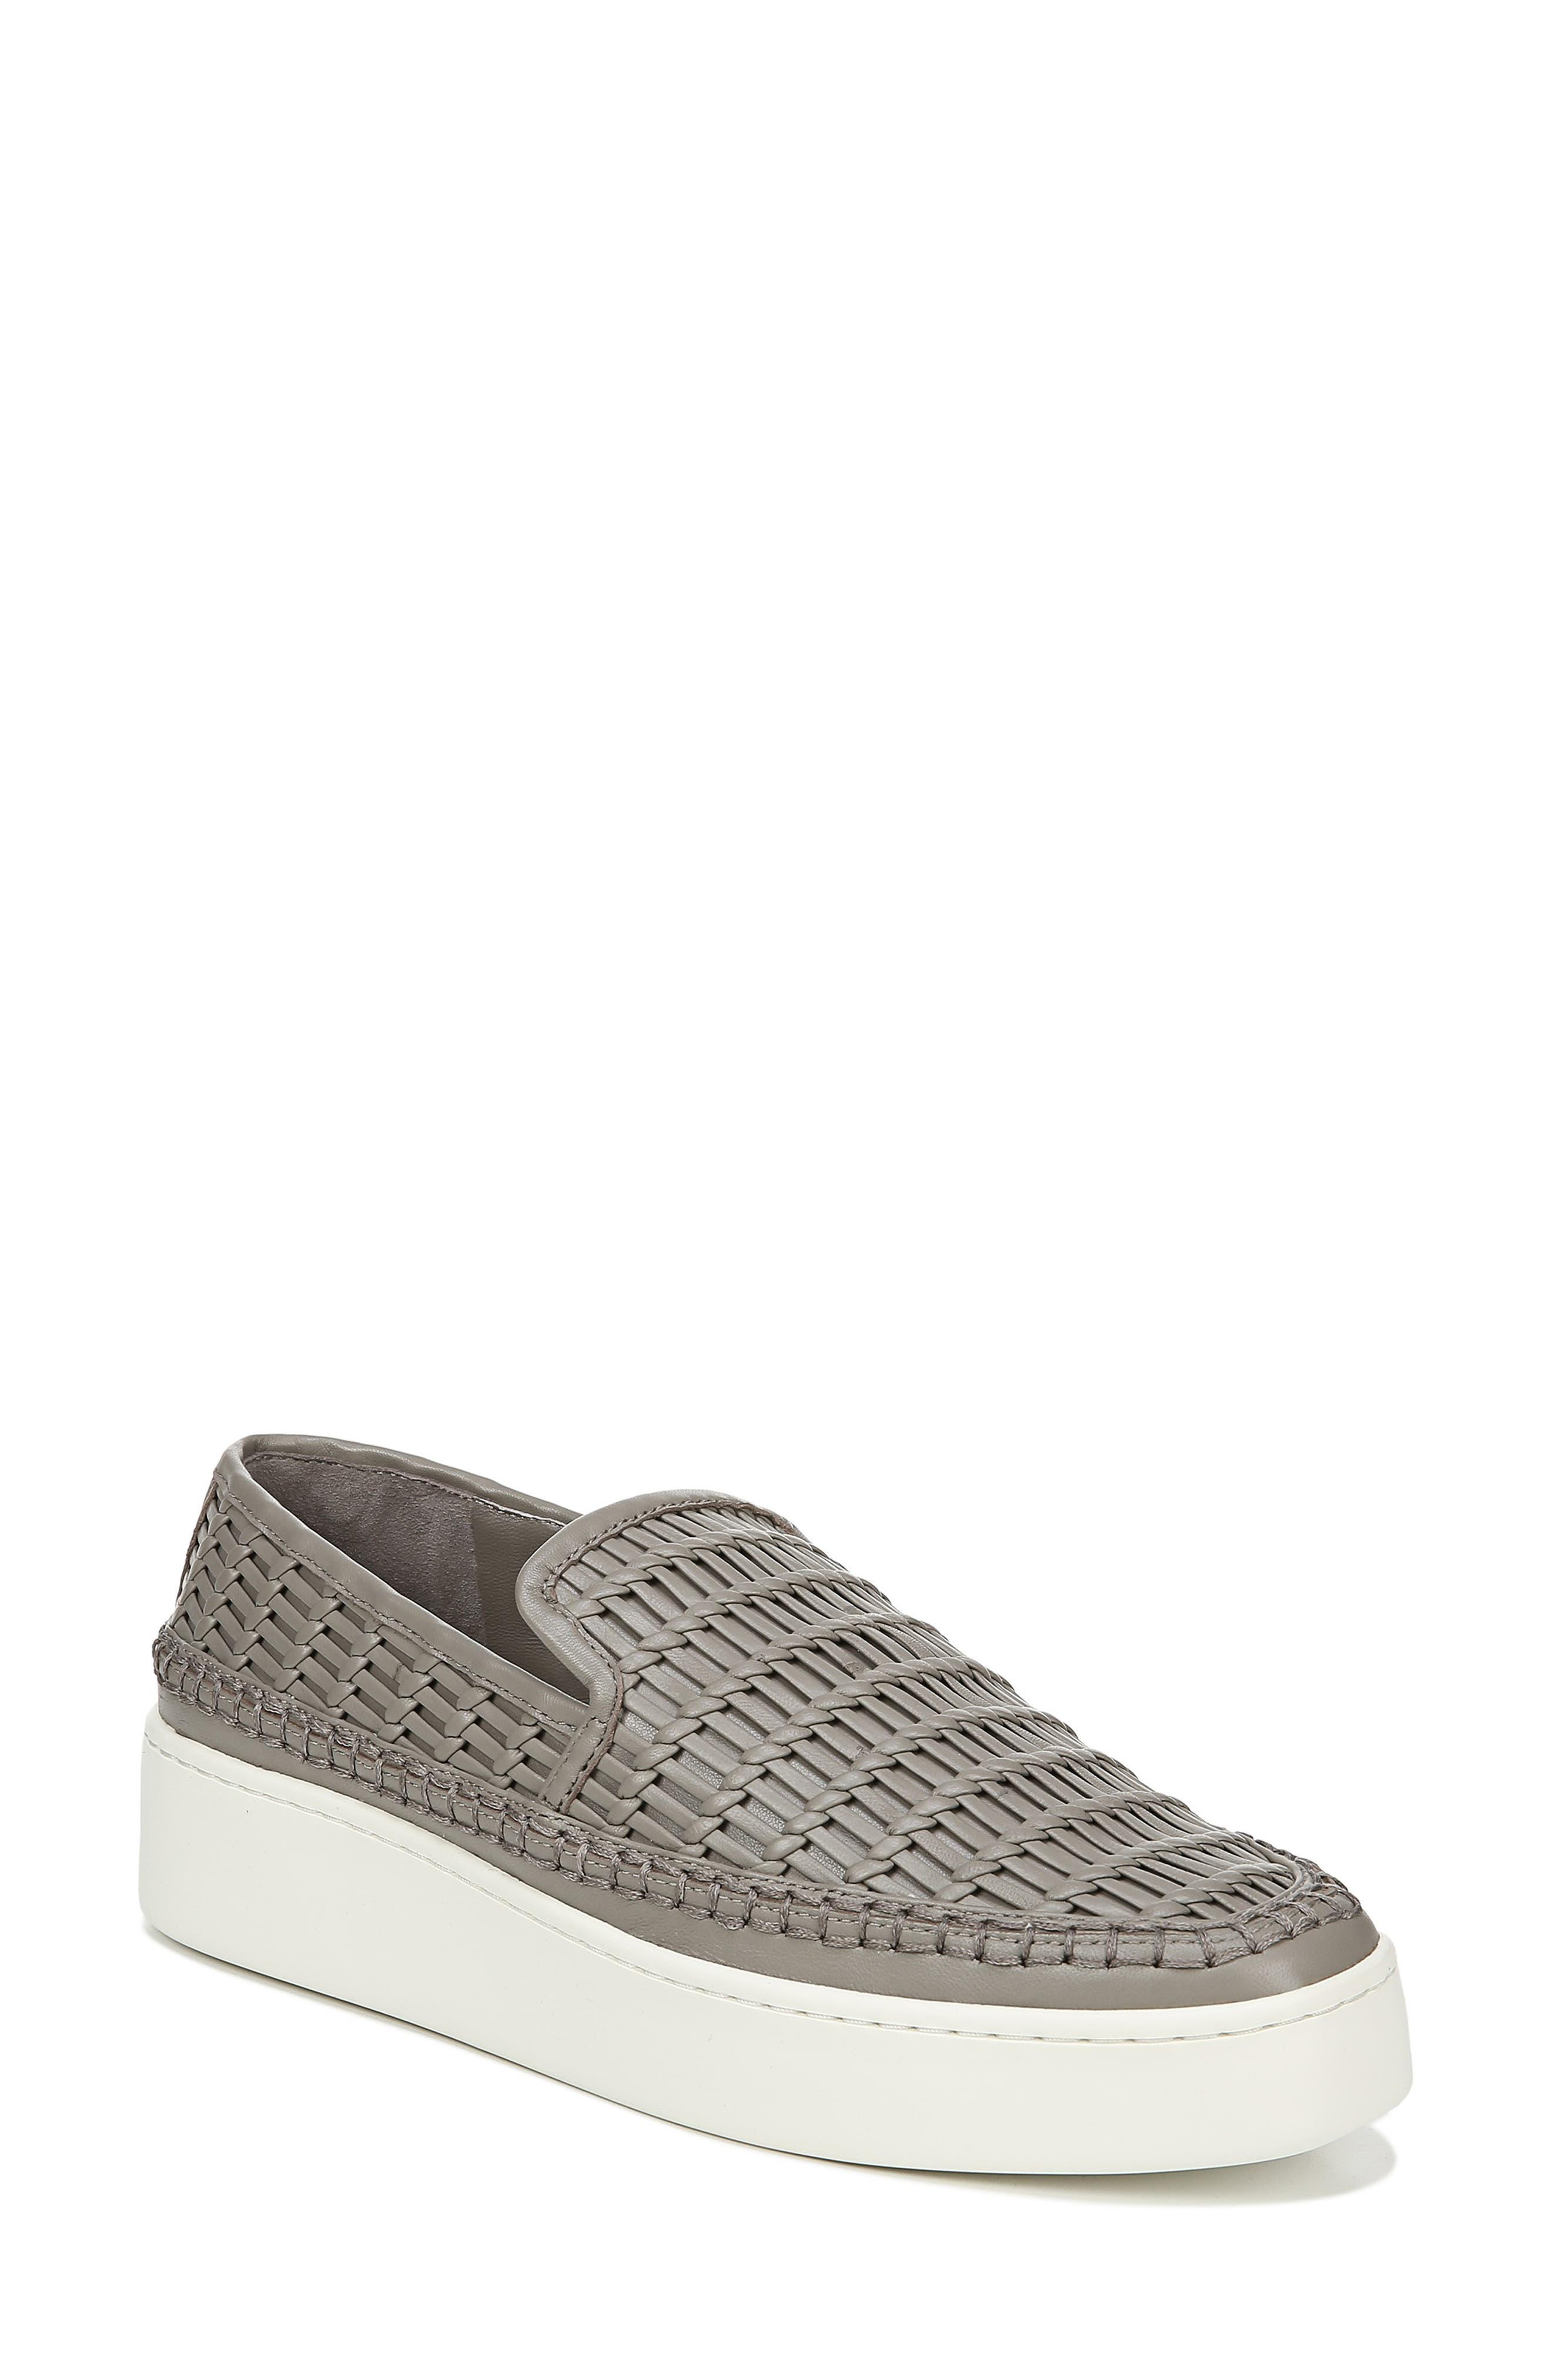 Stafford Sneaker, Main, color, LIGHT WOODSMOKE